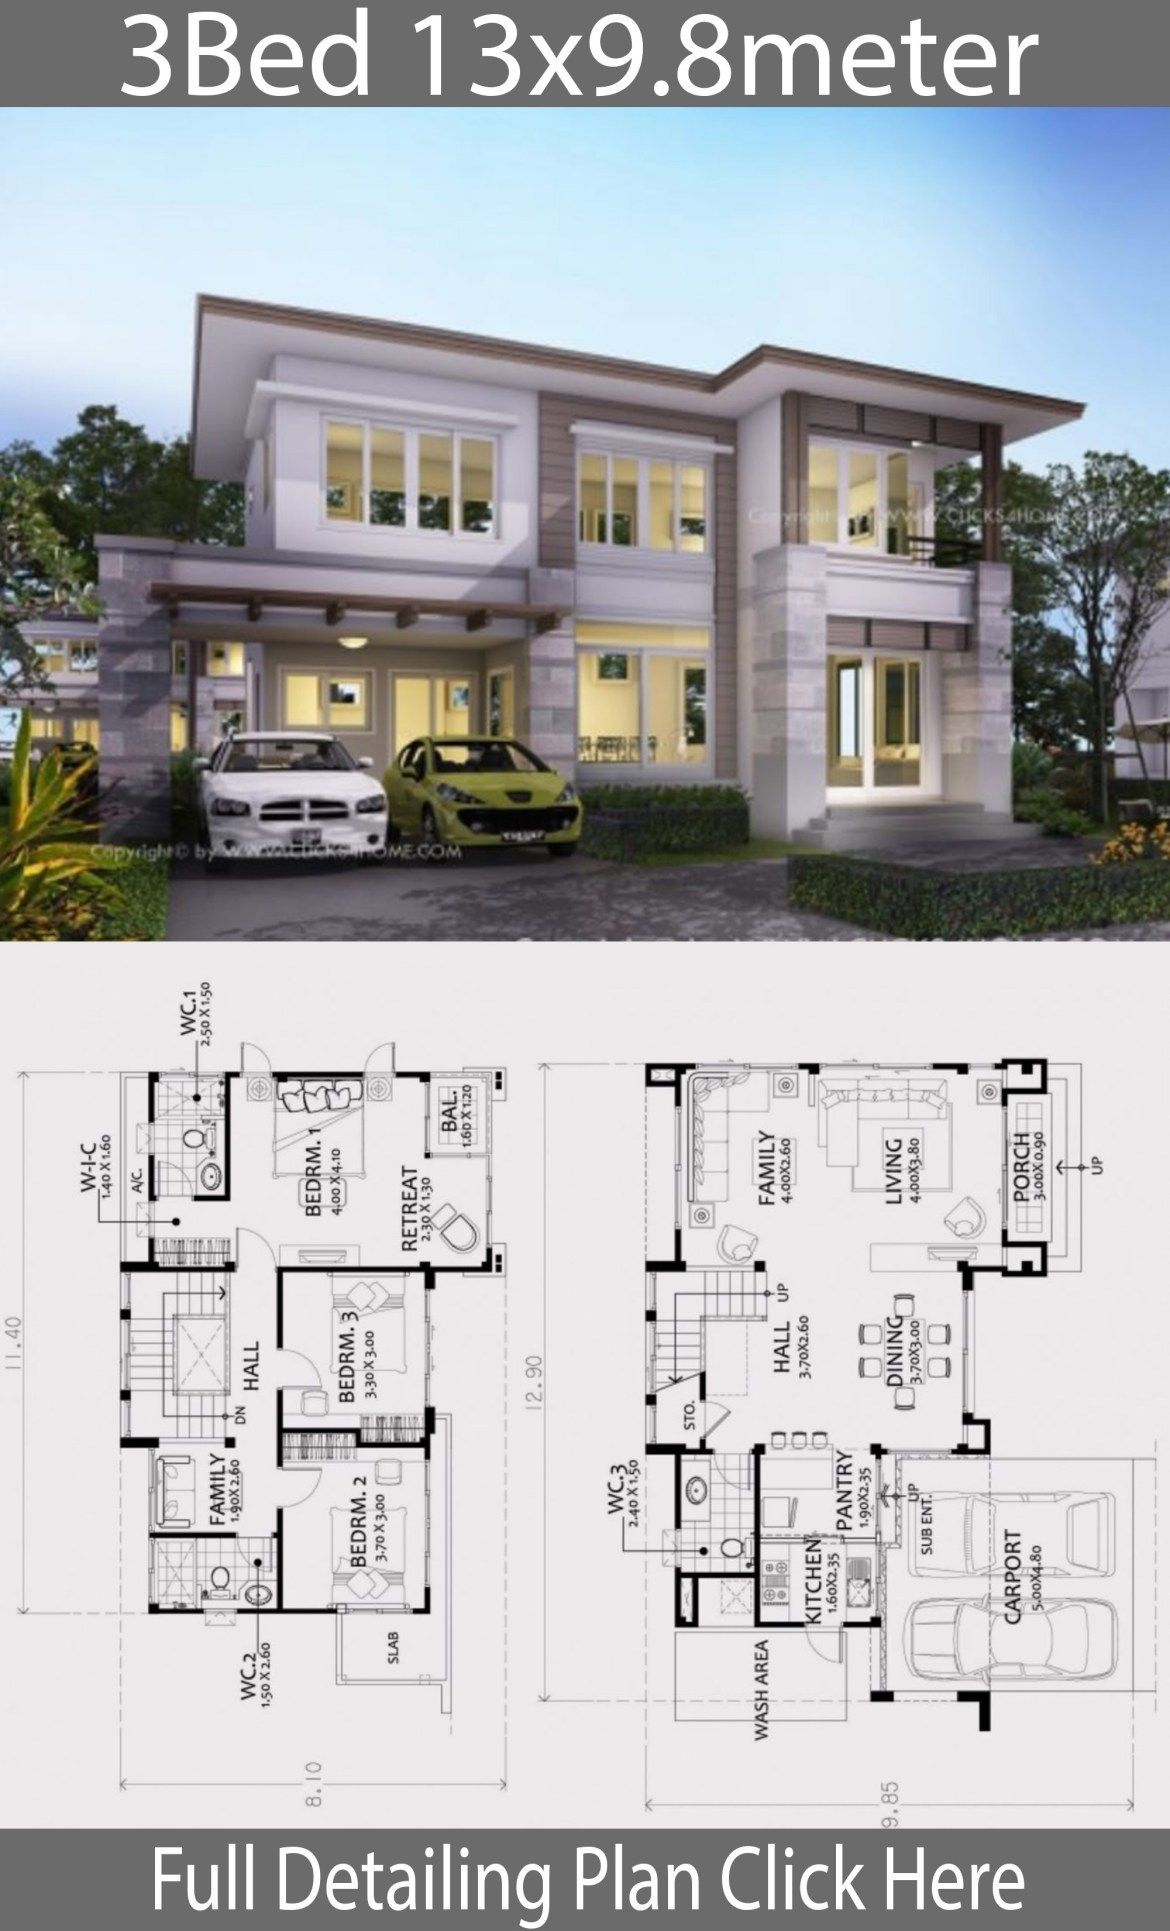 8 Of The Best Living Room Interior Design Trends For 2019 In 2020 Architectural House Plans Simple House Design Home Design Plan